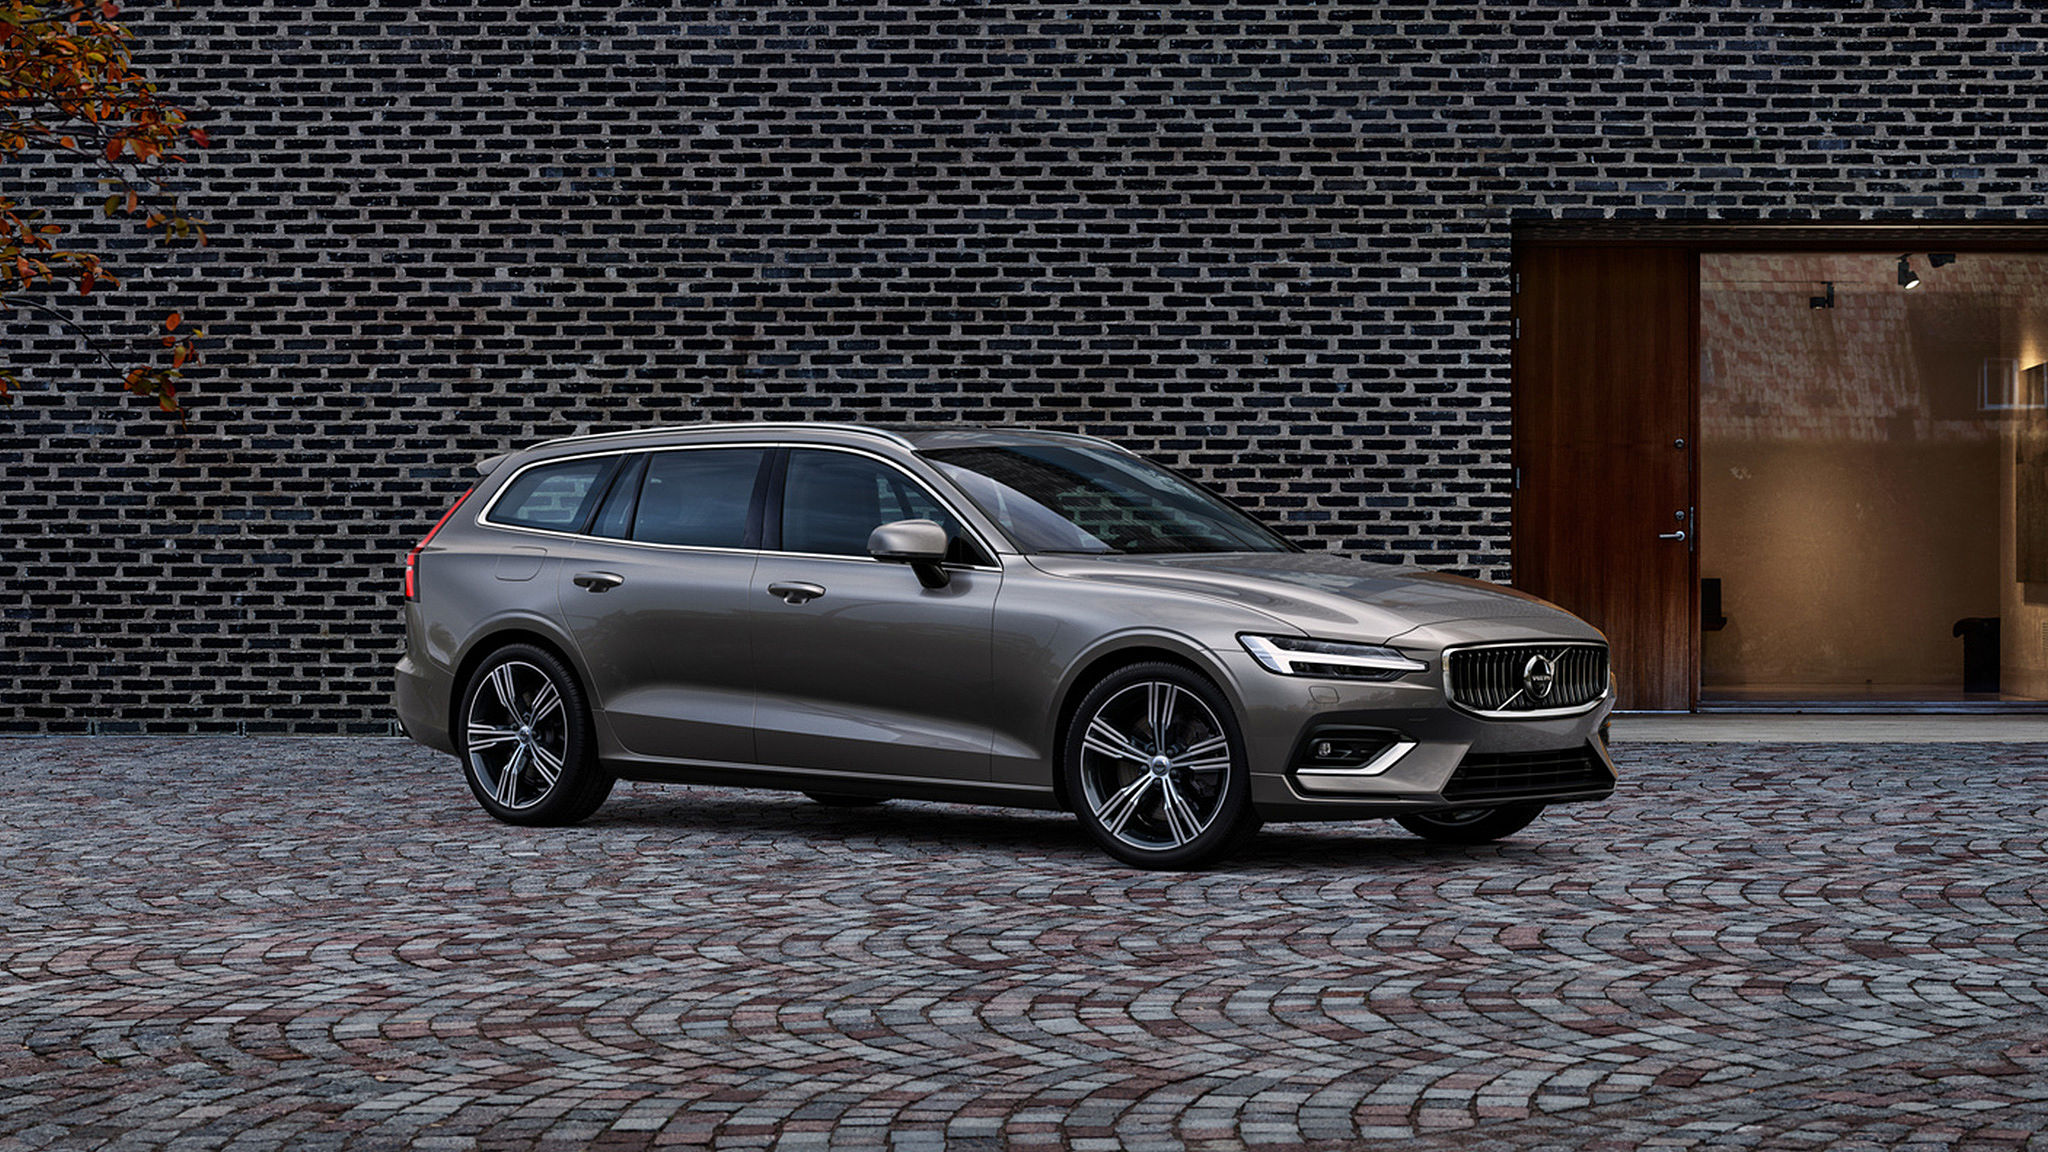 £1,250 finance deposit contribution available on an approved used V60. Two complementary services.  10.9% APR representative.